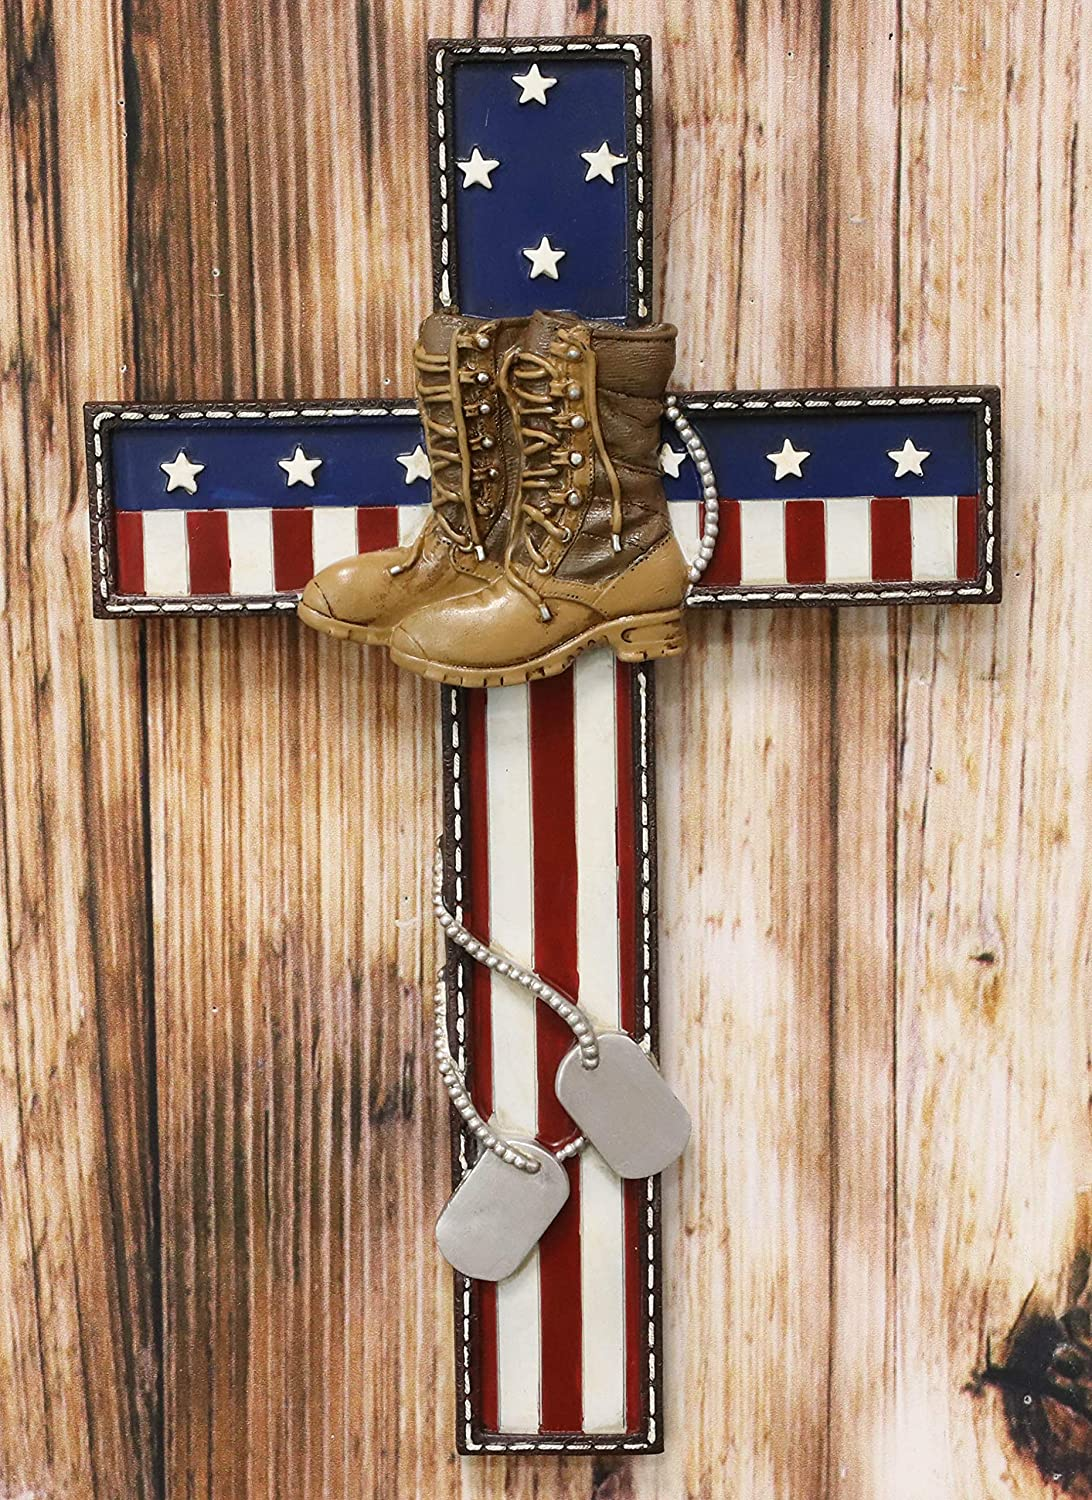 Ebros Gift Rustic Western USA American Flag Military Fallen Soldier With Tactical Boots And Dog Tags Memorial Wall Cross Decor Plaque Vintage Design Hanging Sculpture 11.75